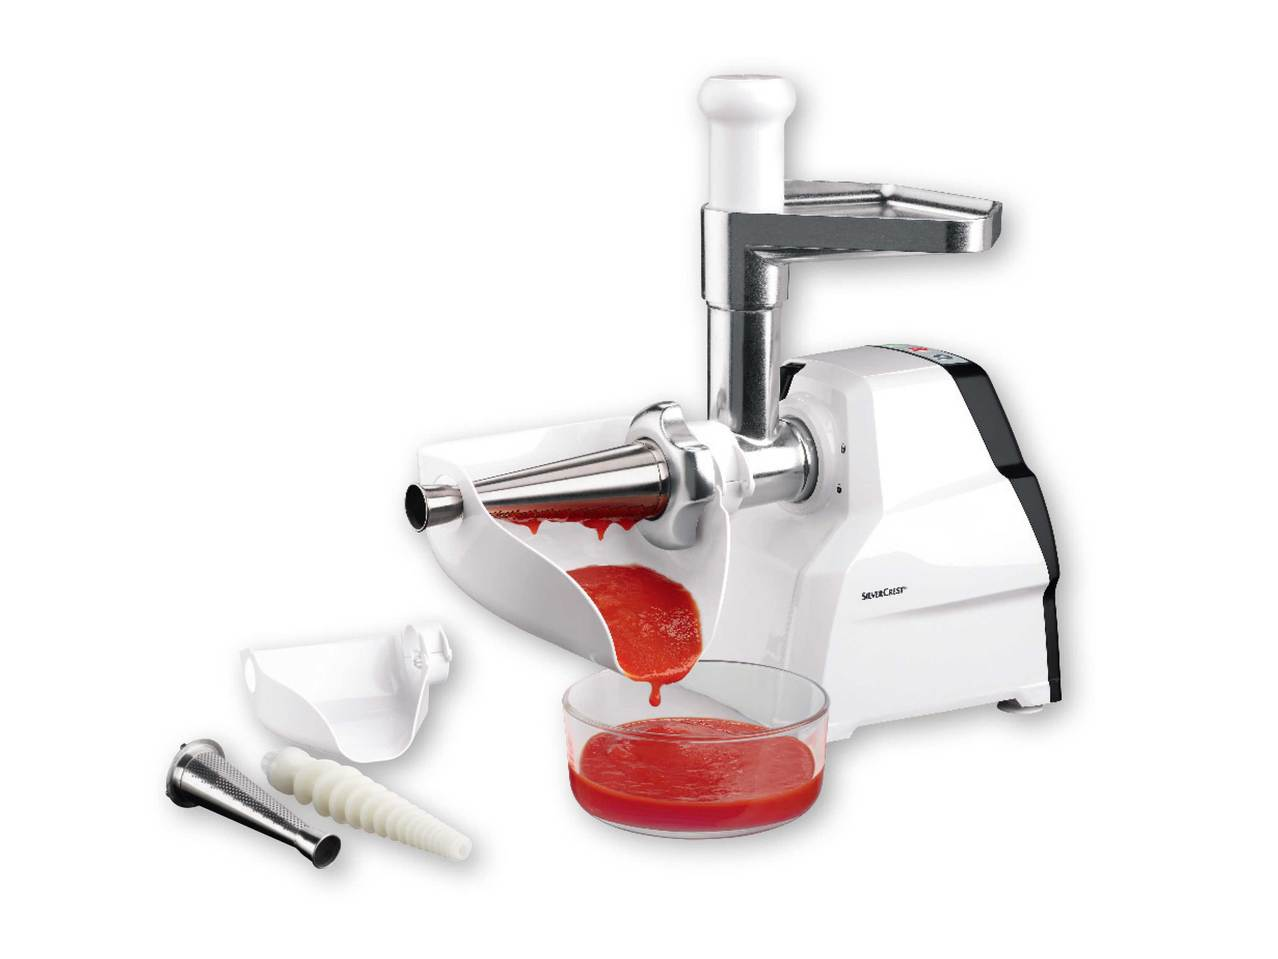 Silvercrest kitchen tools 350w electric mincer lidl - Silvercrest kitchen tools opiniones ...